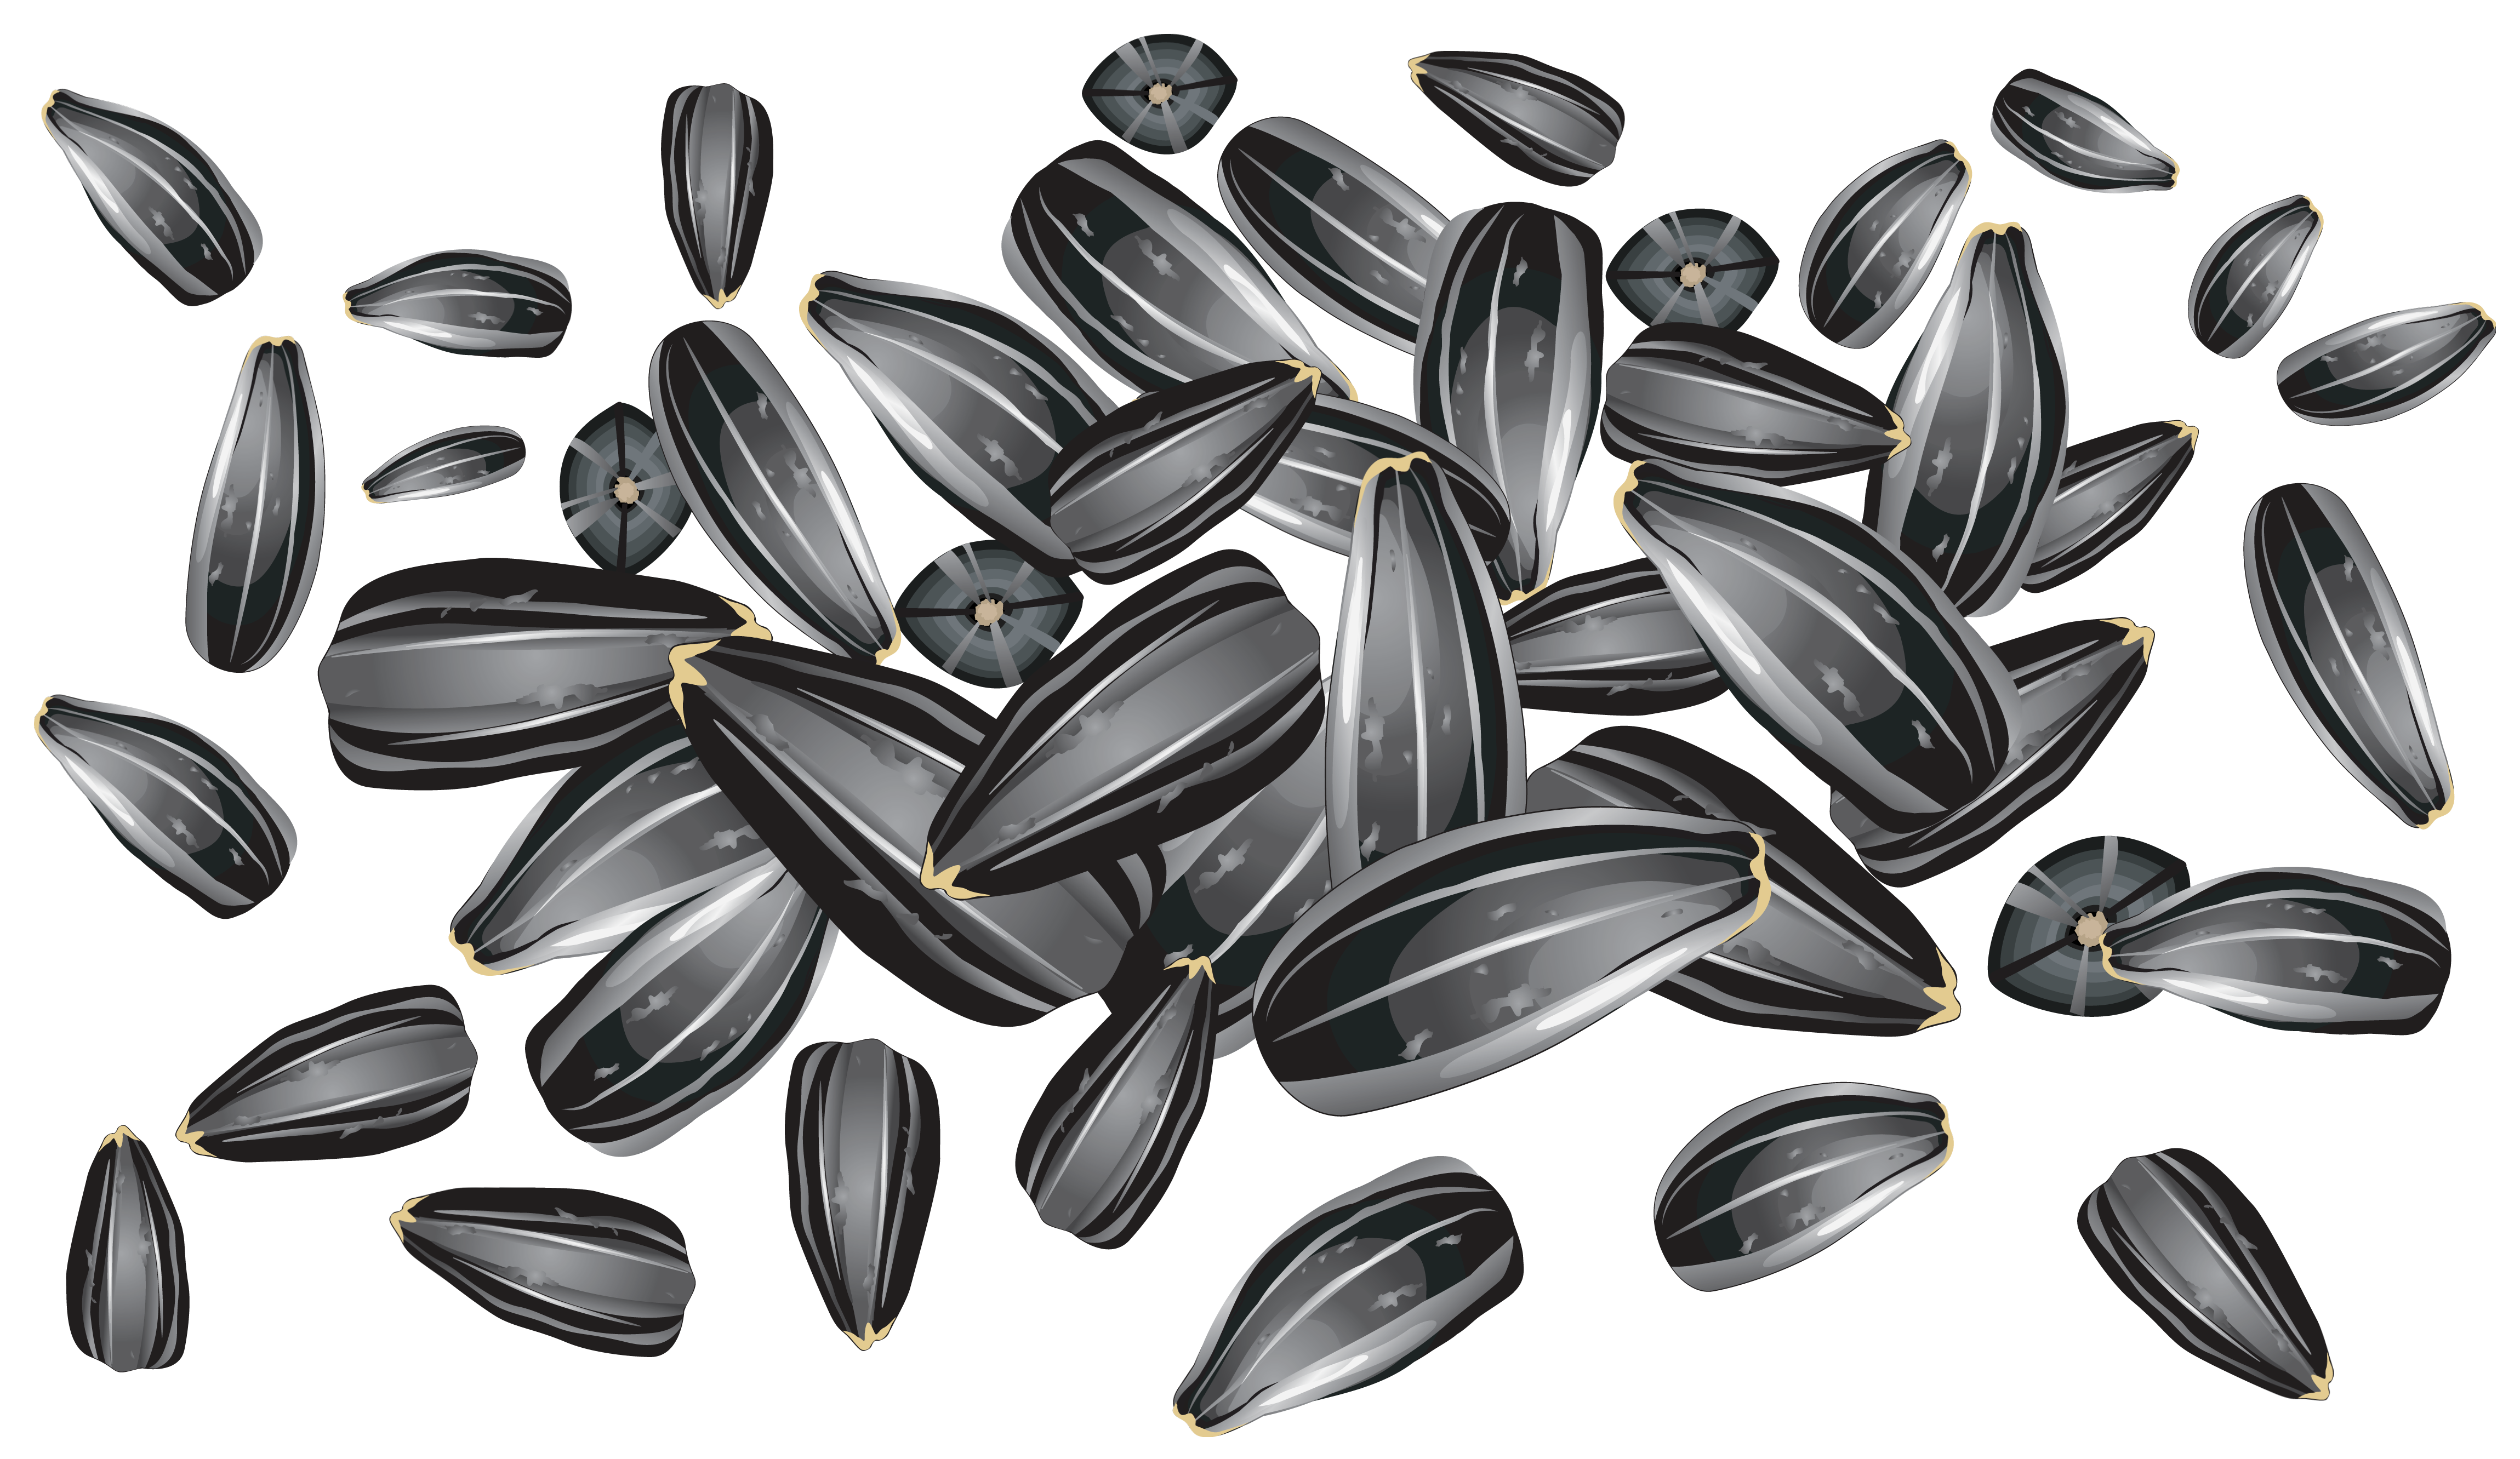 Seed clipart sunflower seed Yopriceville Picture View full High